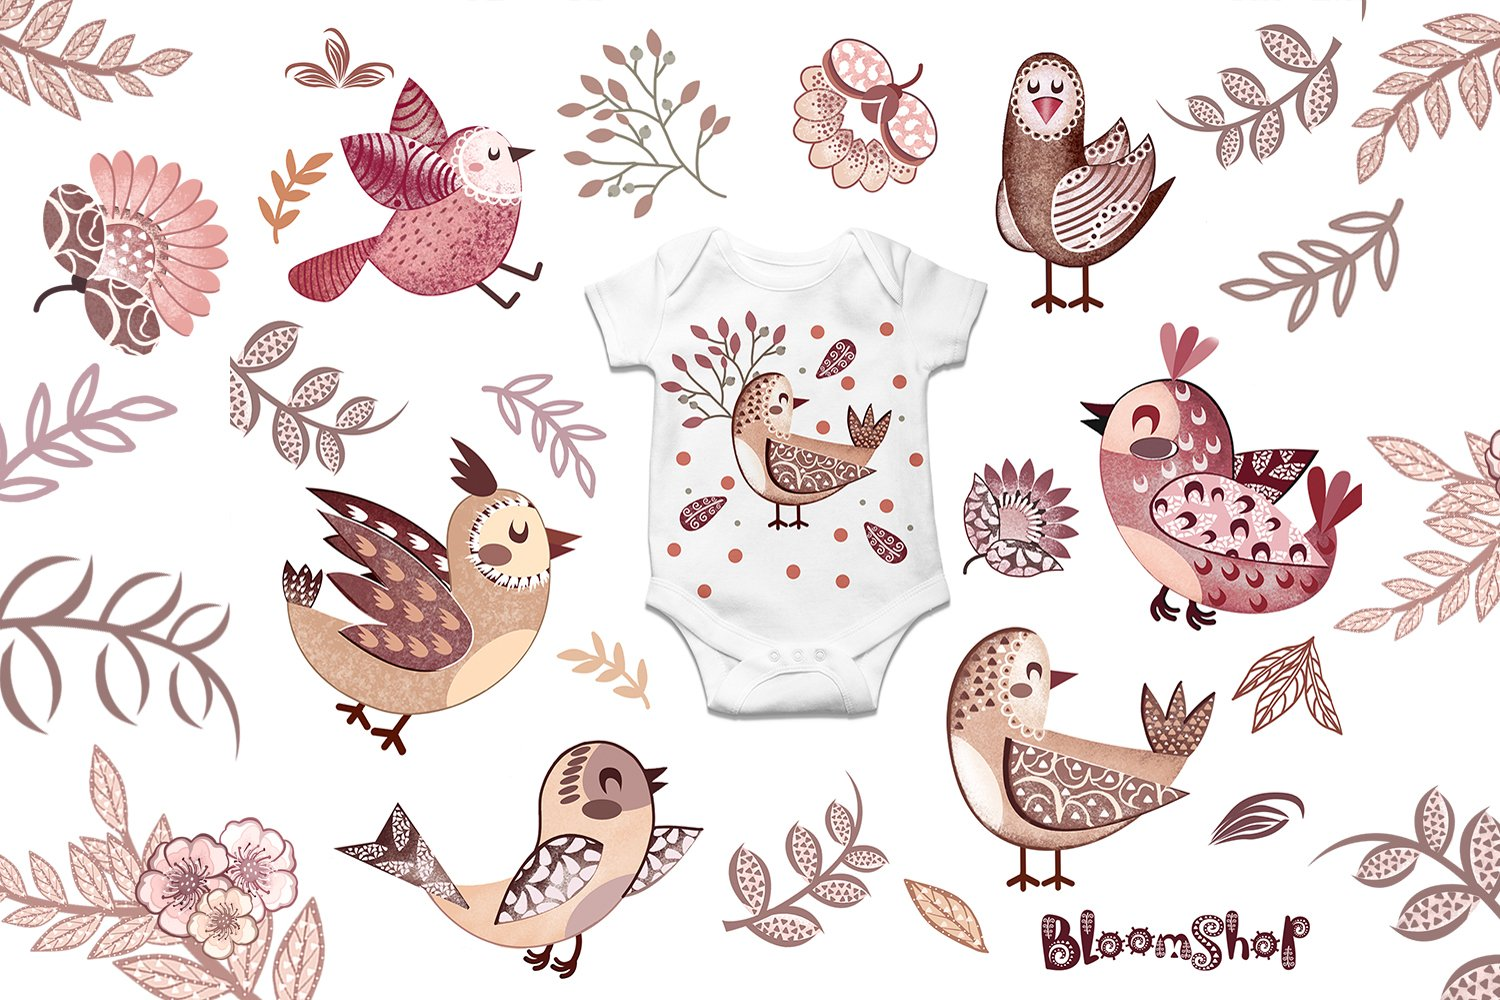 Cute birds with flowers clipart, Pink birds, burgundy flower example image 3